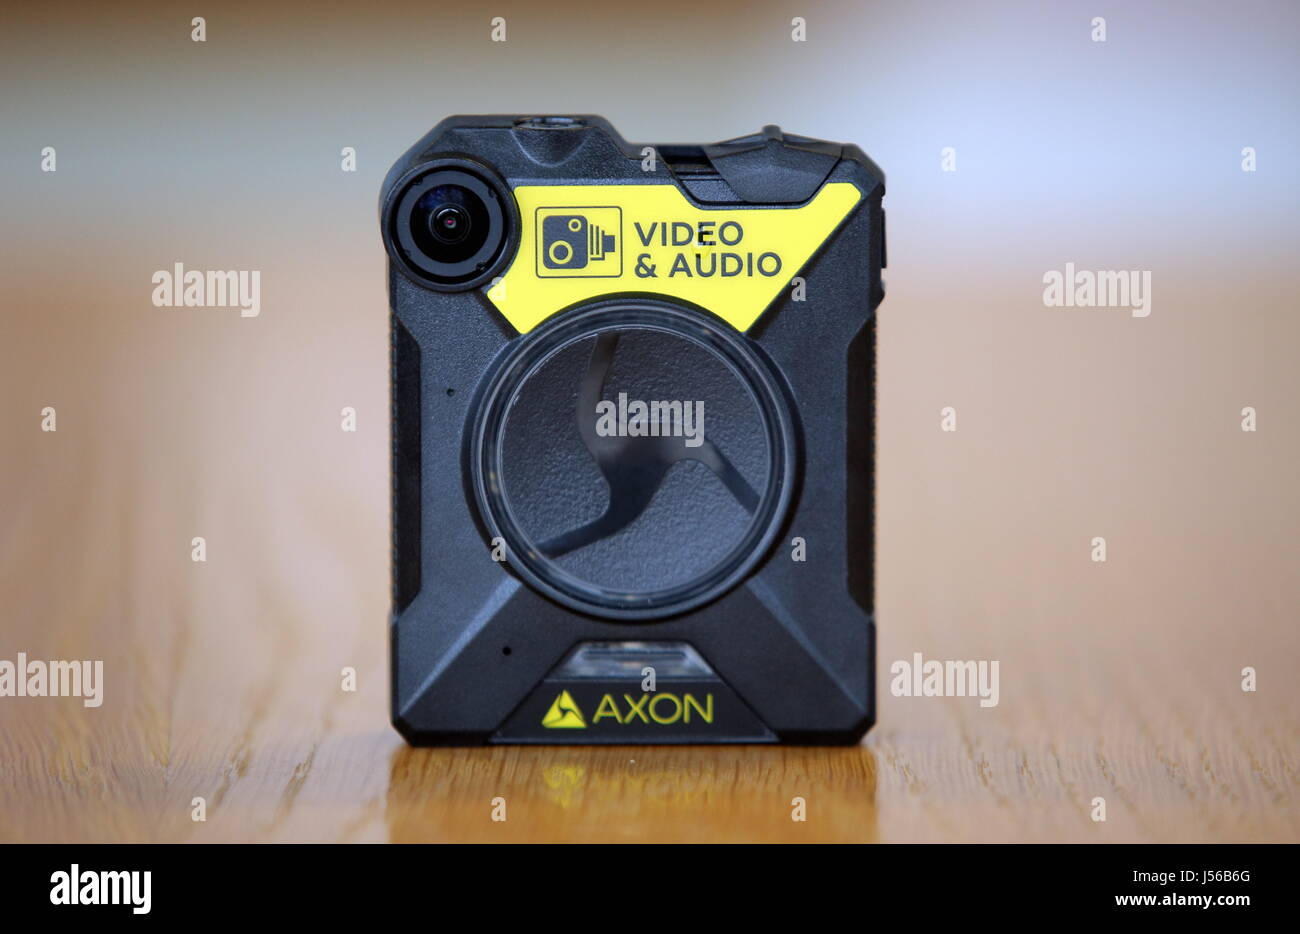 cardiff-uk-17th-may-2017-one-of-the-axon-bodycams-body-worn-video-J56B6G.jpg?profile=RESIZE_400x